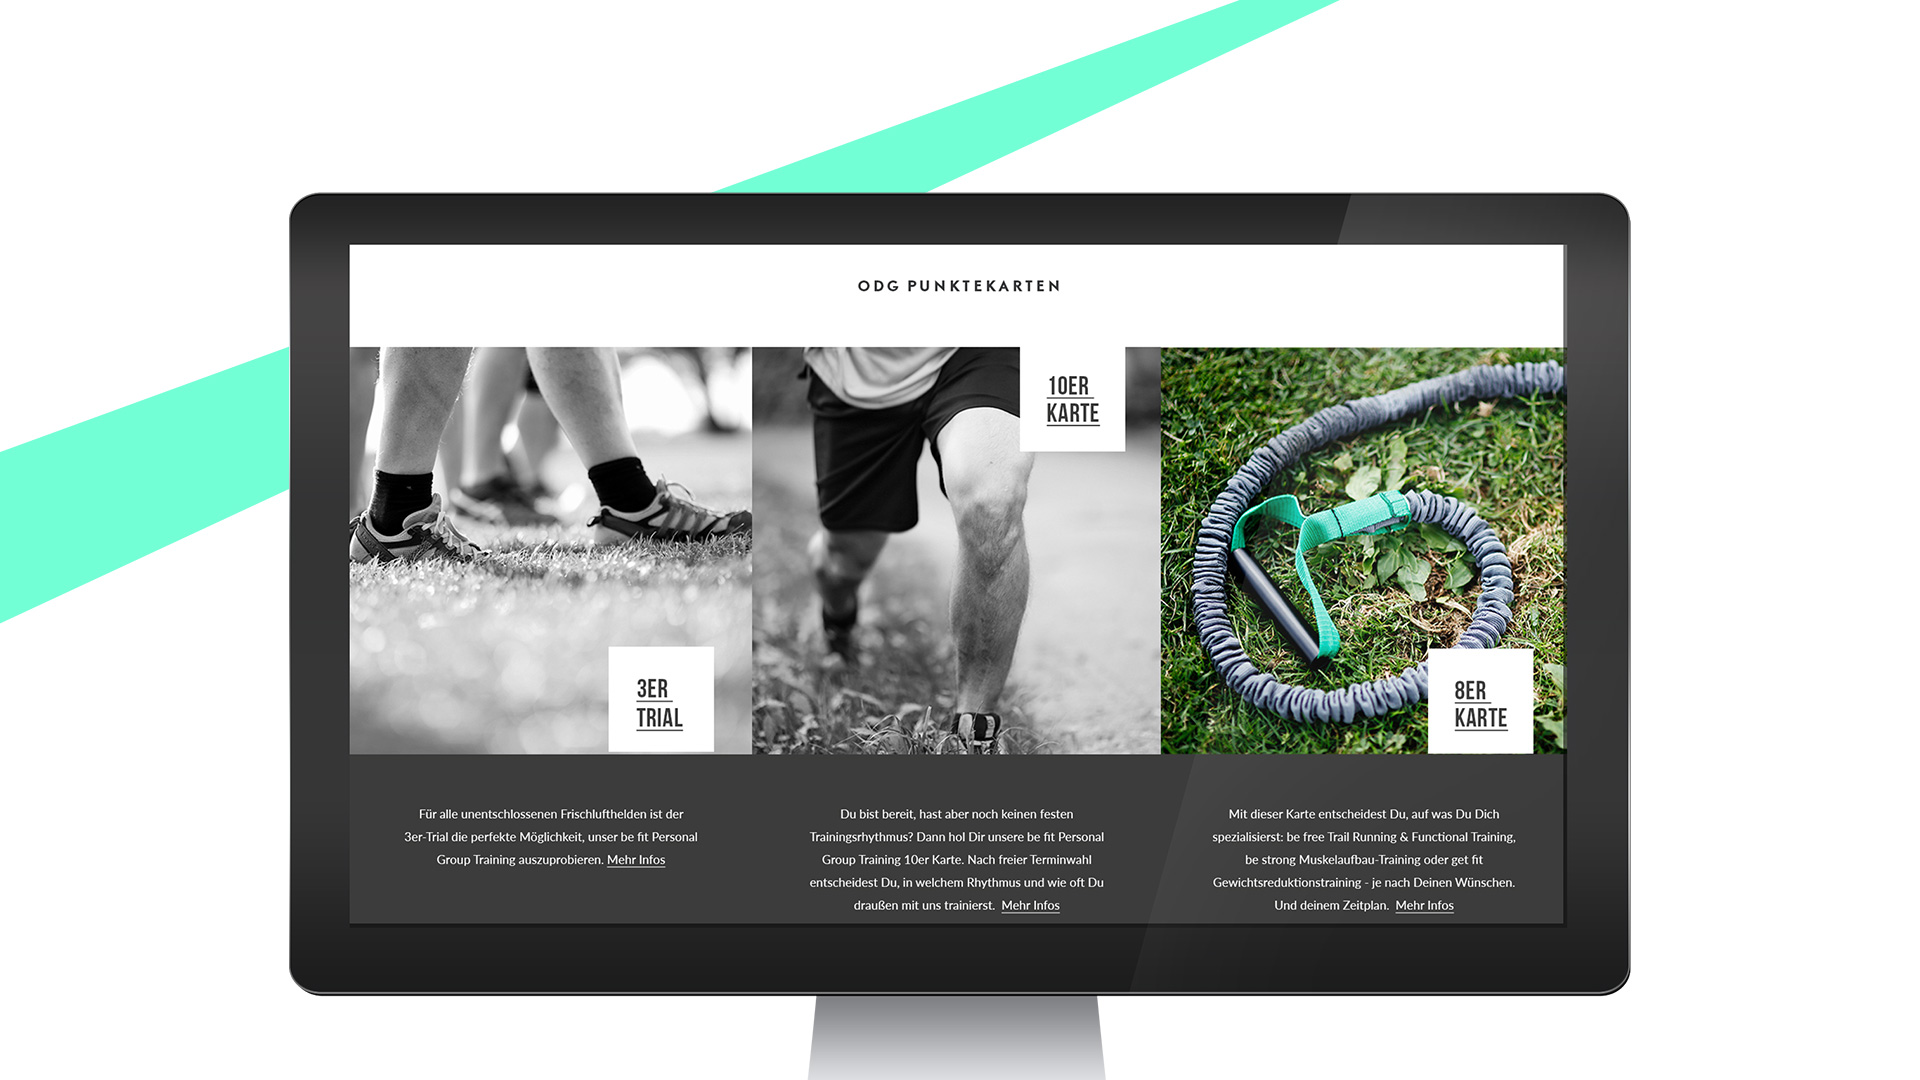 Outdoor Gym Webdesign Angebotsseite